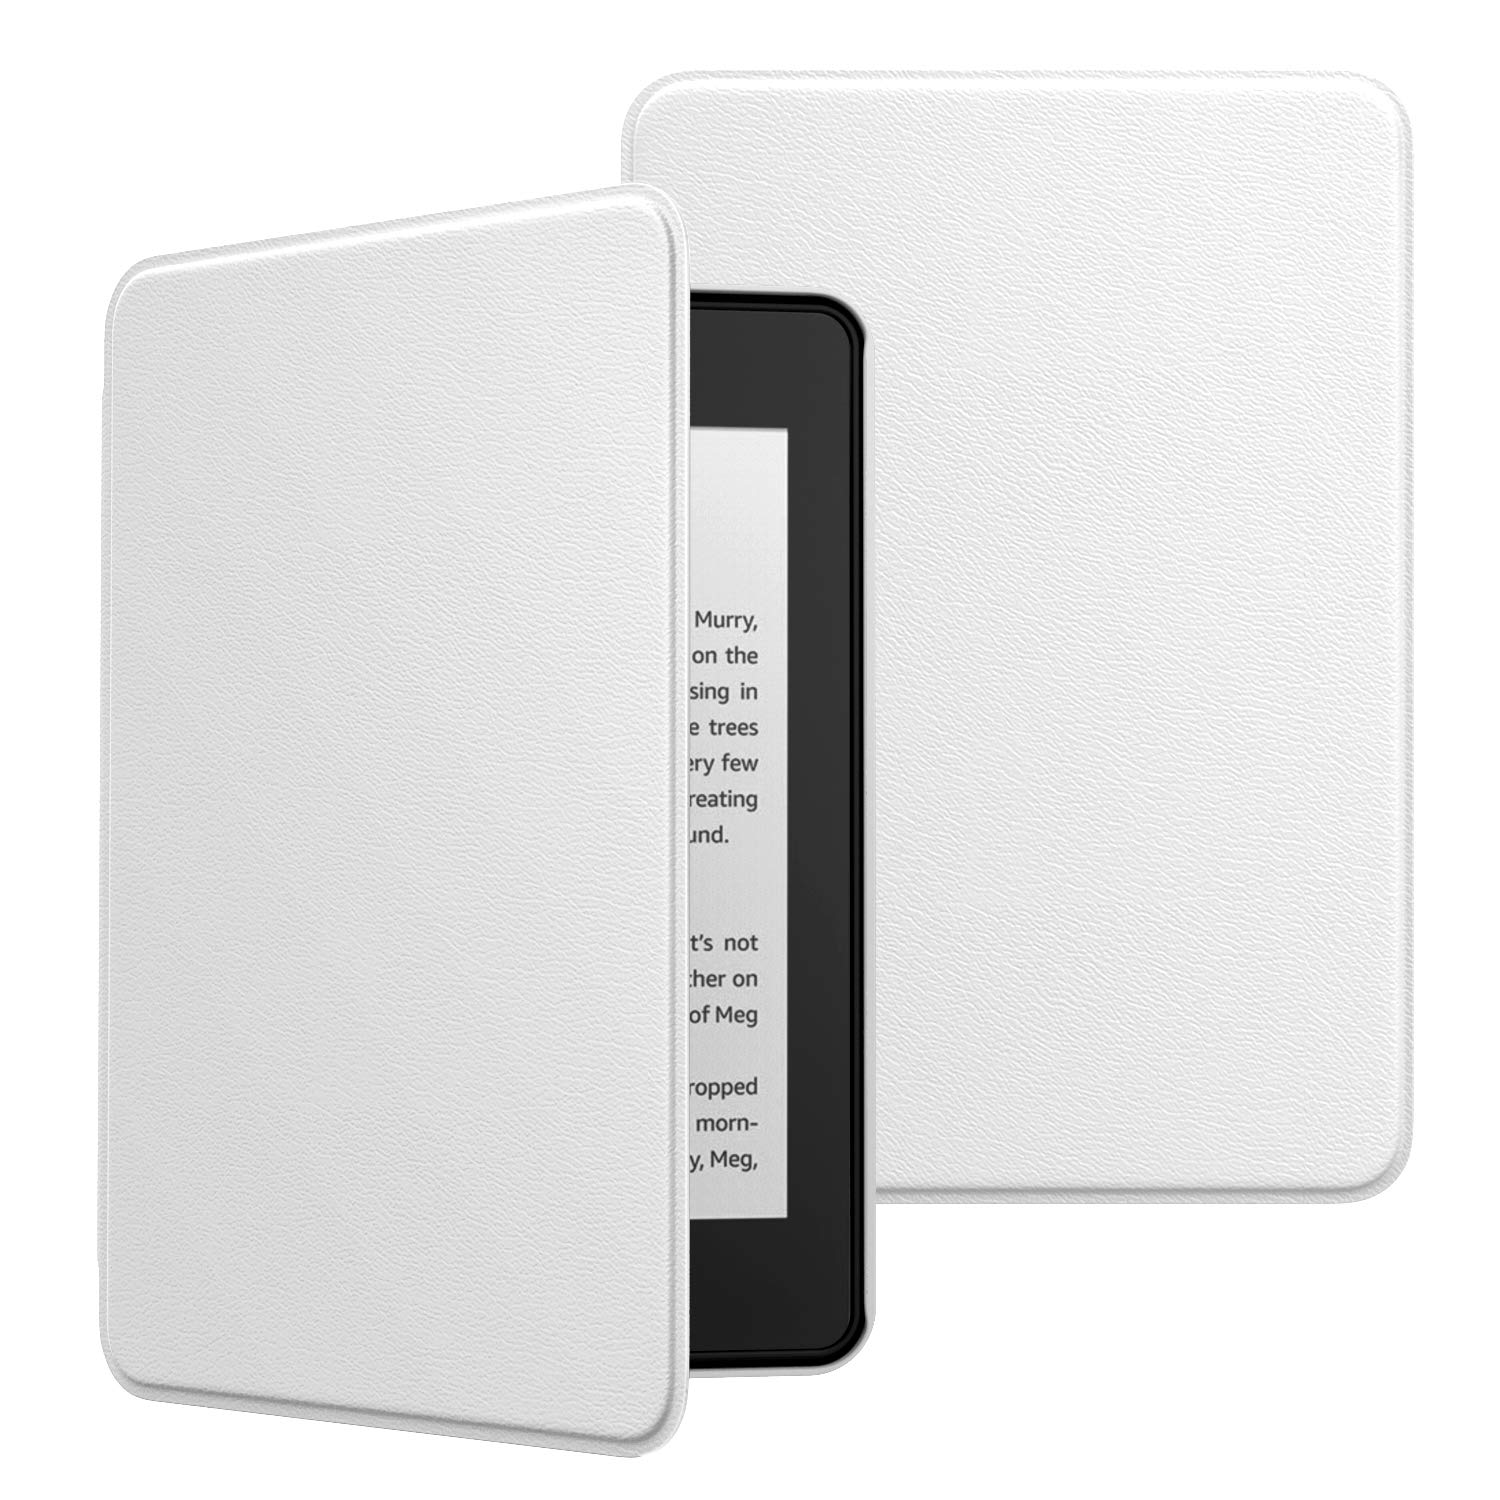 MoKo Case Fits Kindle Paperwhite (10th Generation, 2018 Releases), Premium Ultra Lightweight Shell Cover with Auto Wake/Sleep for Amazon Kindle Paperwhite 2018 E-Reader - White